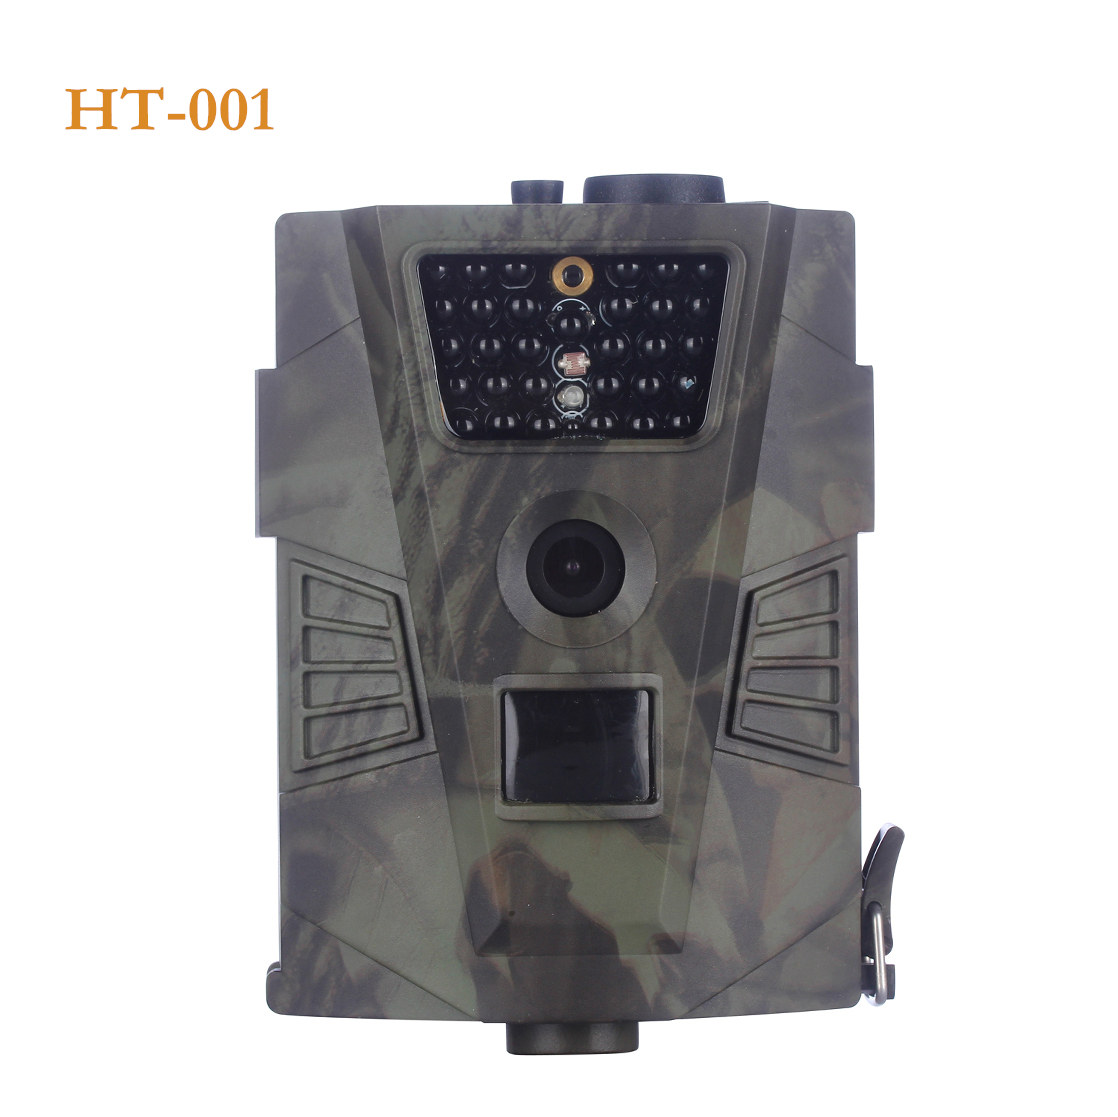 Hunting Trail Camera 1080P HD Waterproof IP54 Night Vision Wild Camera HT001 Forest Camera Animal photo traps Scout HT-001Hunting Trail Camera 1080P HD Waterproof IP54 Night Vision Wild Camera HT001 Forest Camera Animal photo traps Scout HT-001